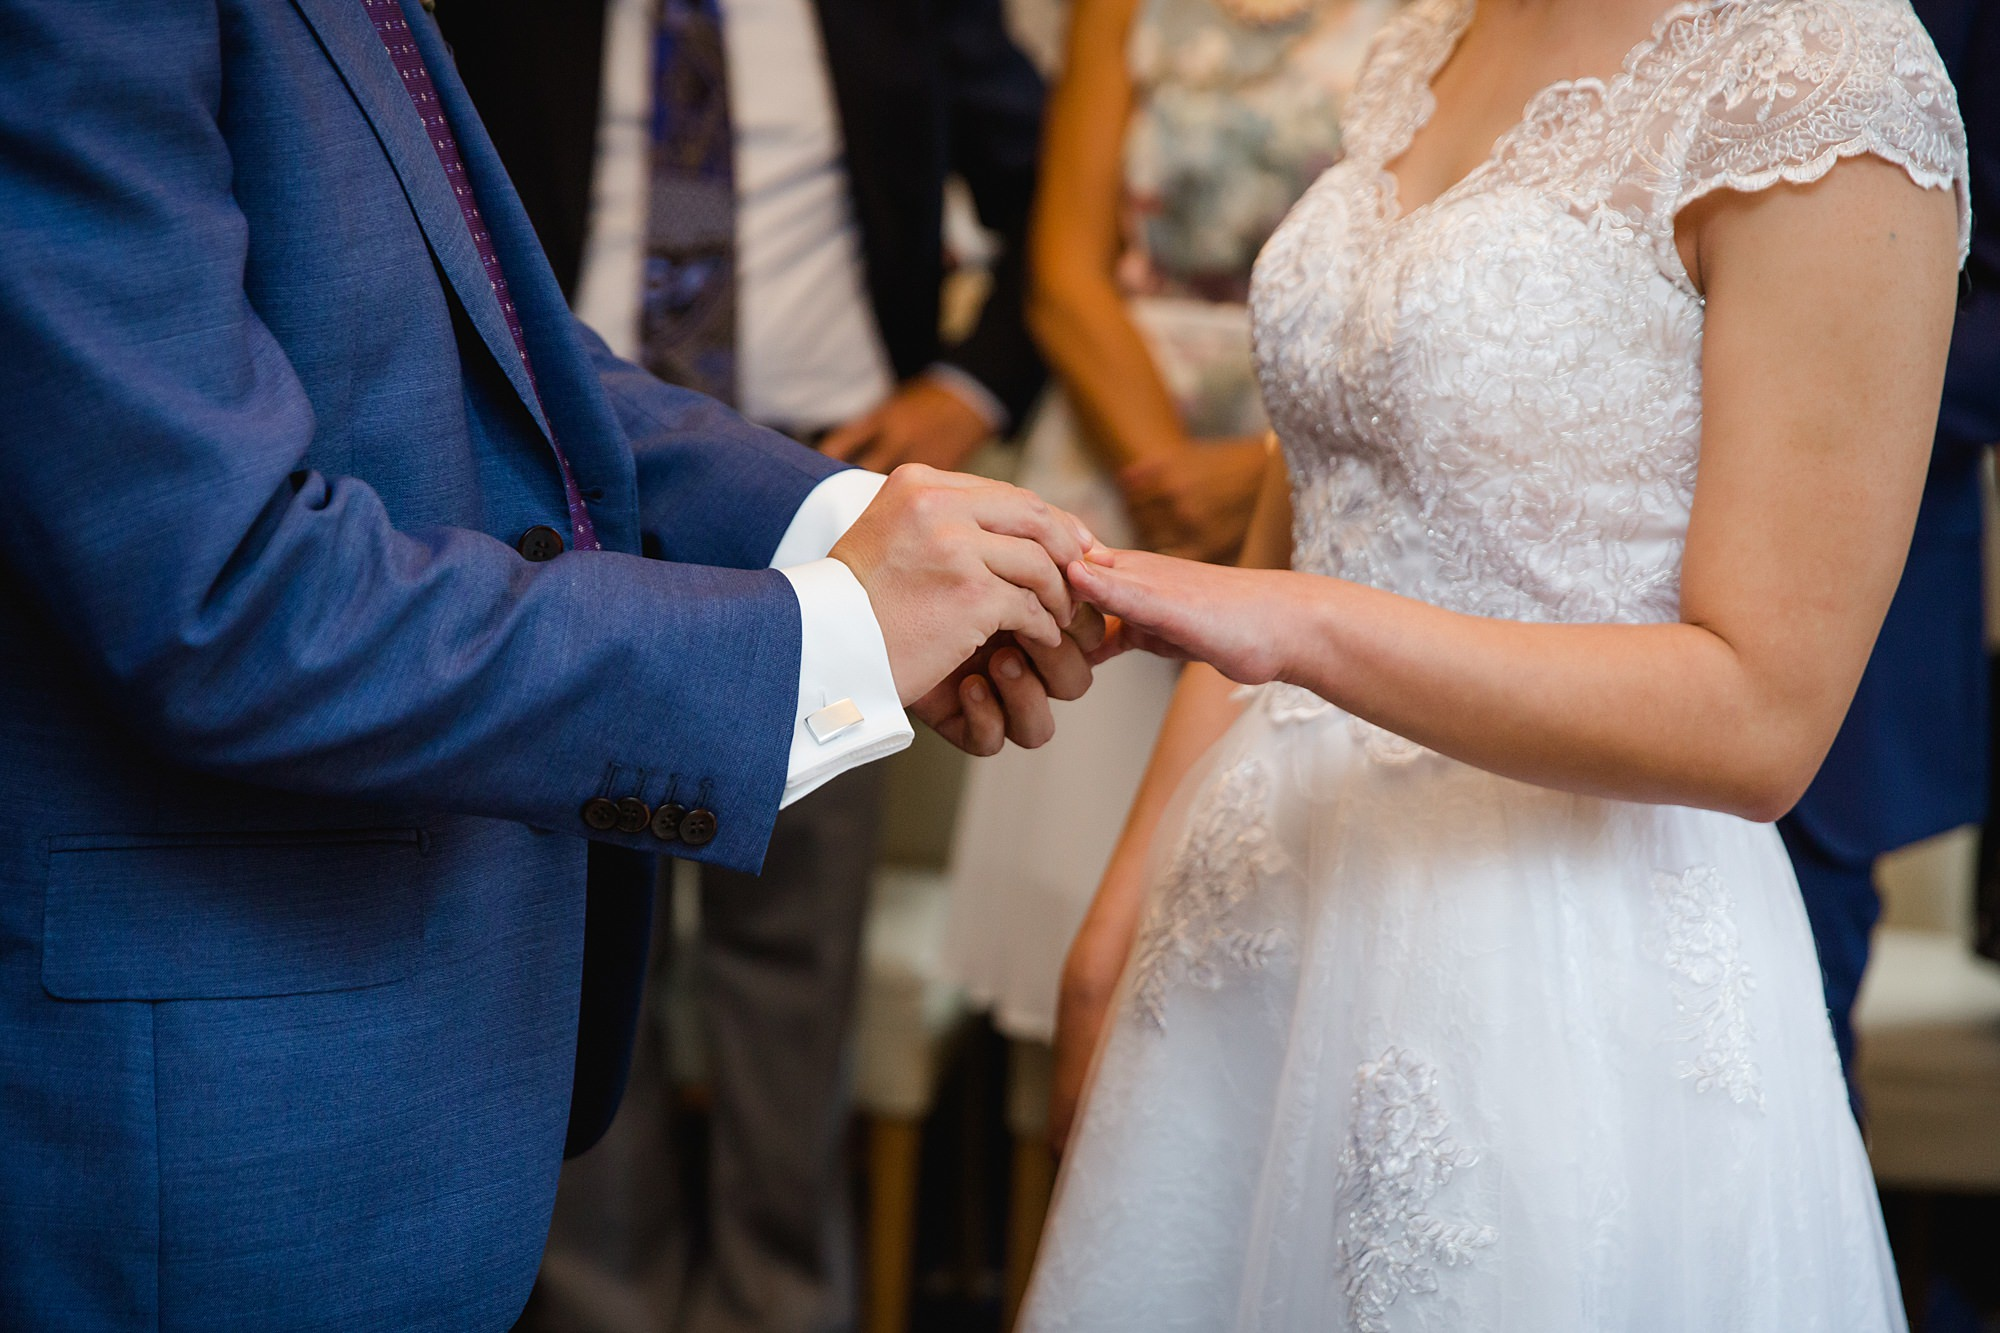 Wandsworth pub wedding couple exchange rings